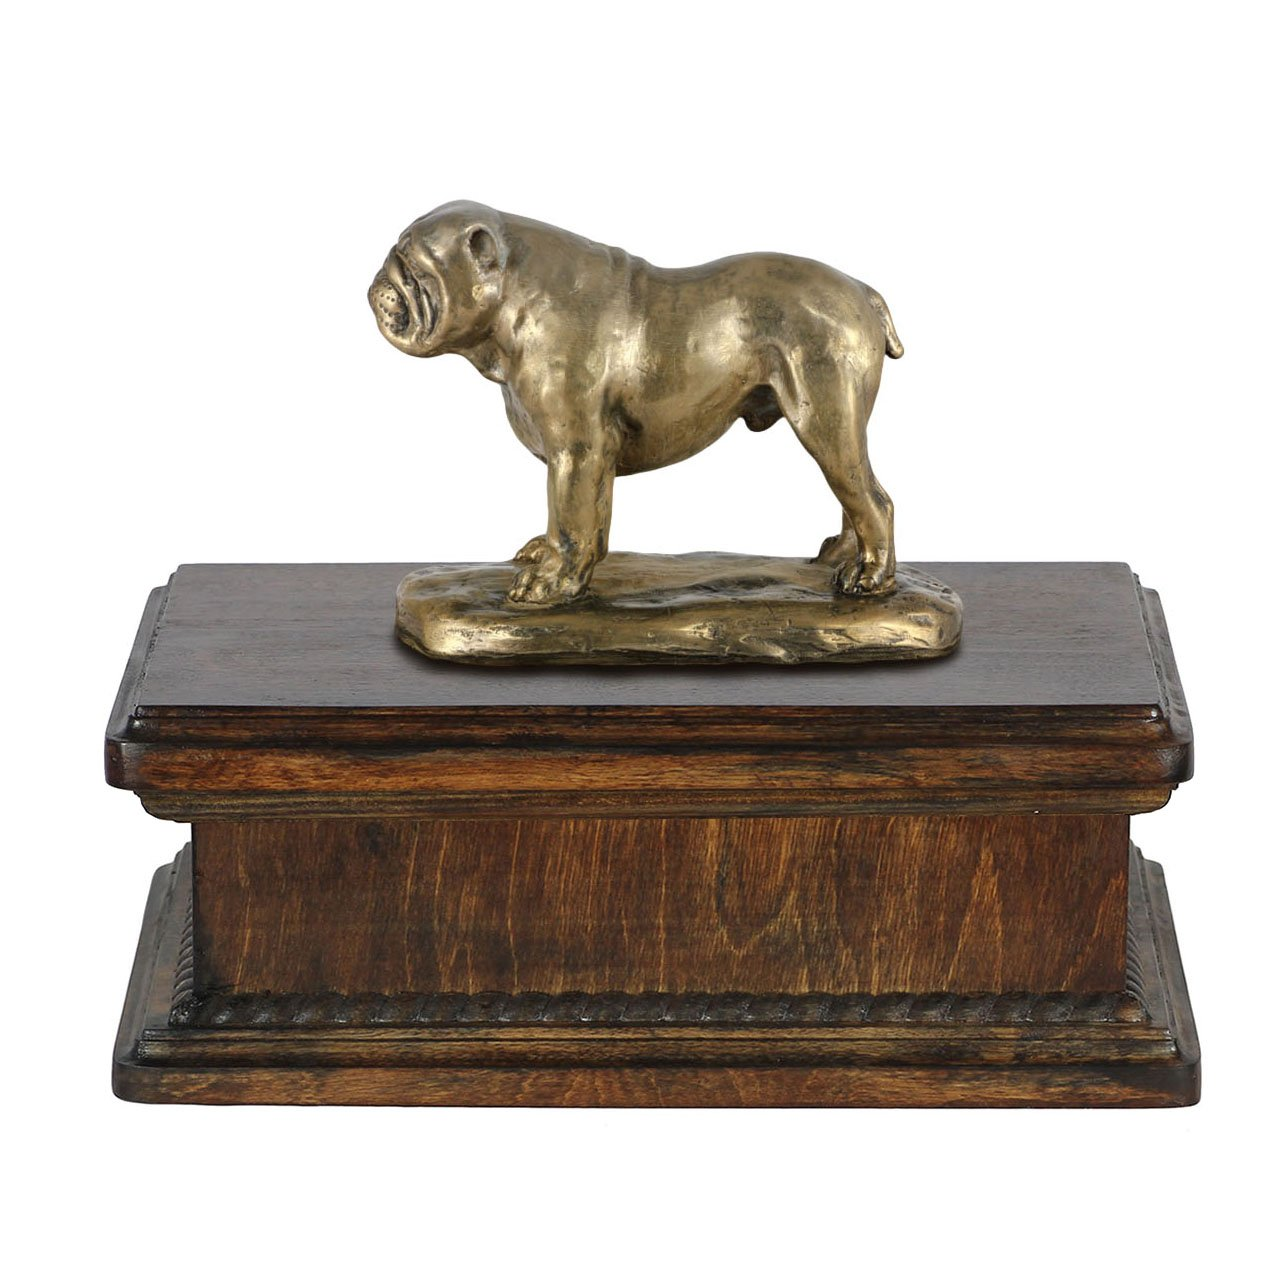 English Bulldog, memorial, urn for dog's ashes, with dog statue, exclusive, ArtDog